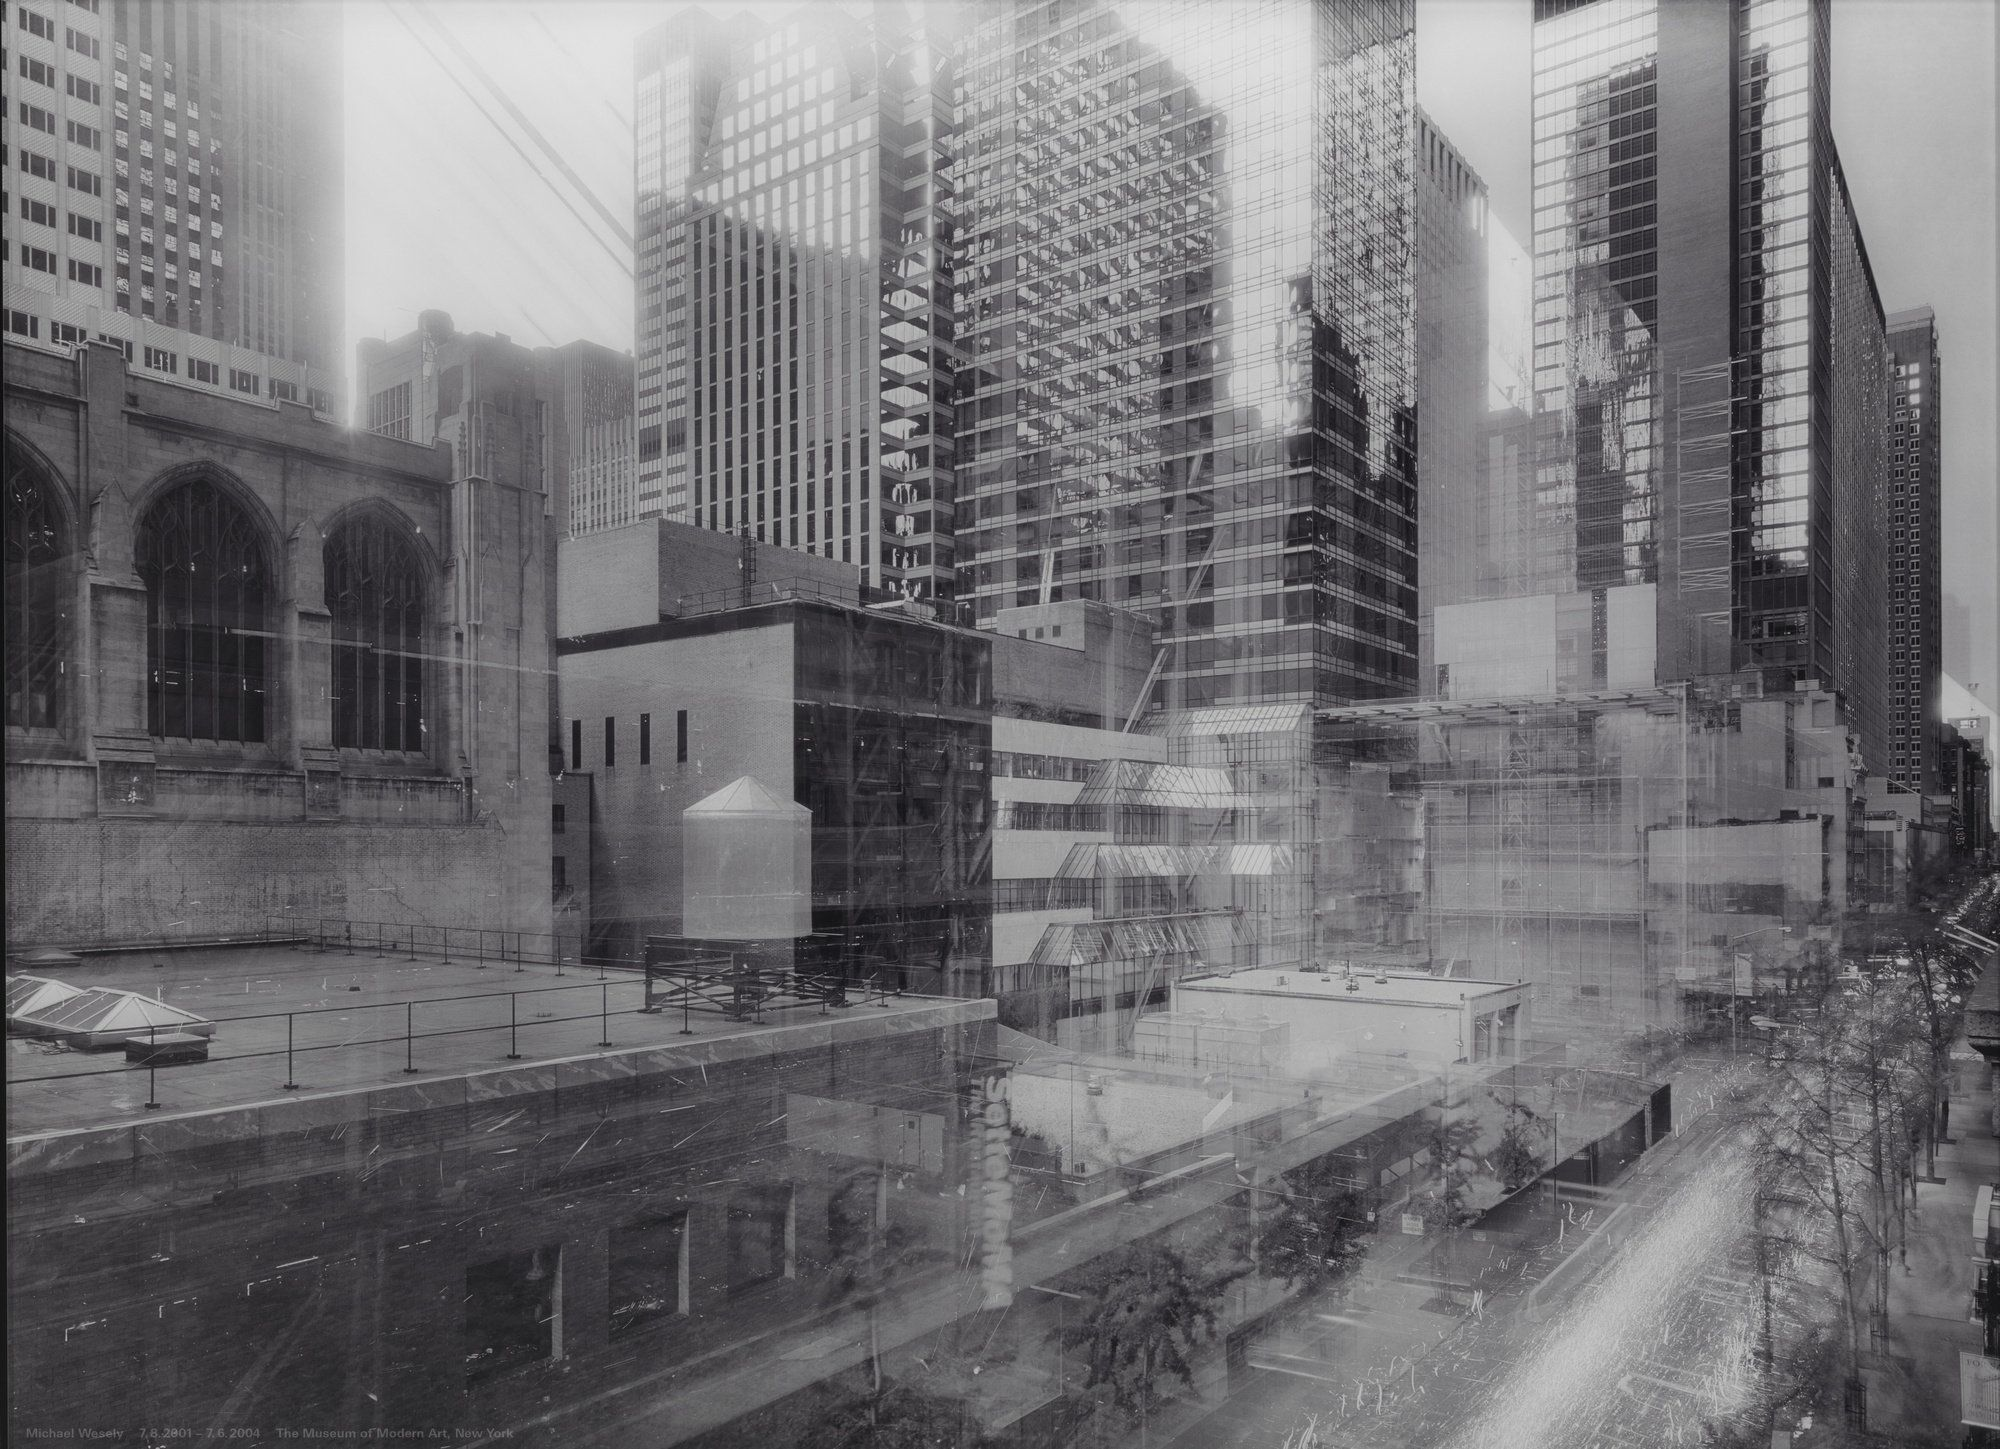 Michael Wesely 7 August 2001 7 June 2004 The Museum Of Modern Art New York 2001 04 Museum Of Modern Art Architecture Photography Modern Art